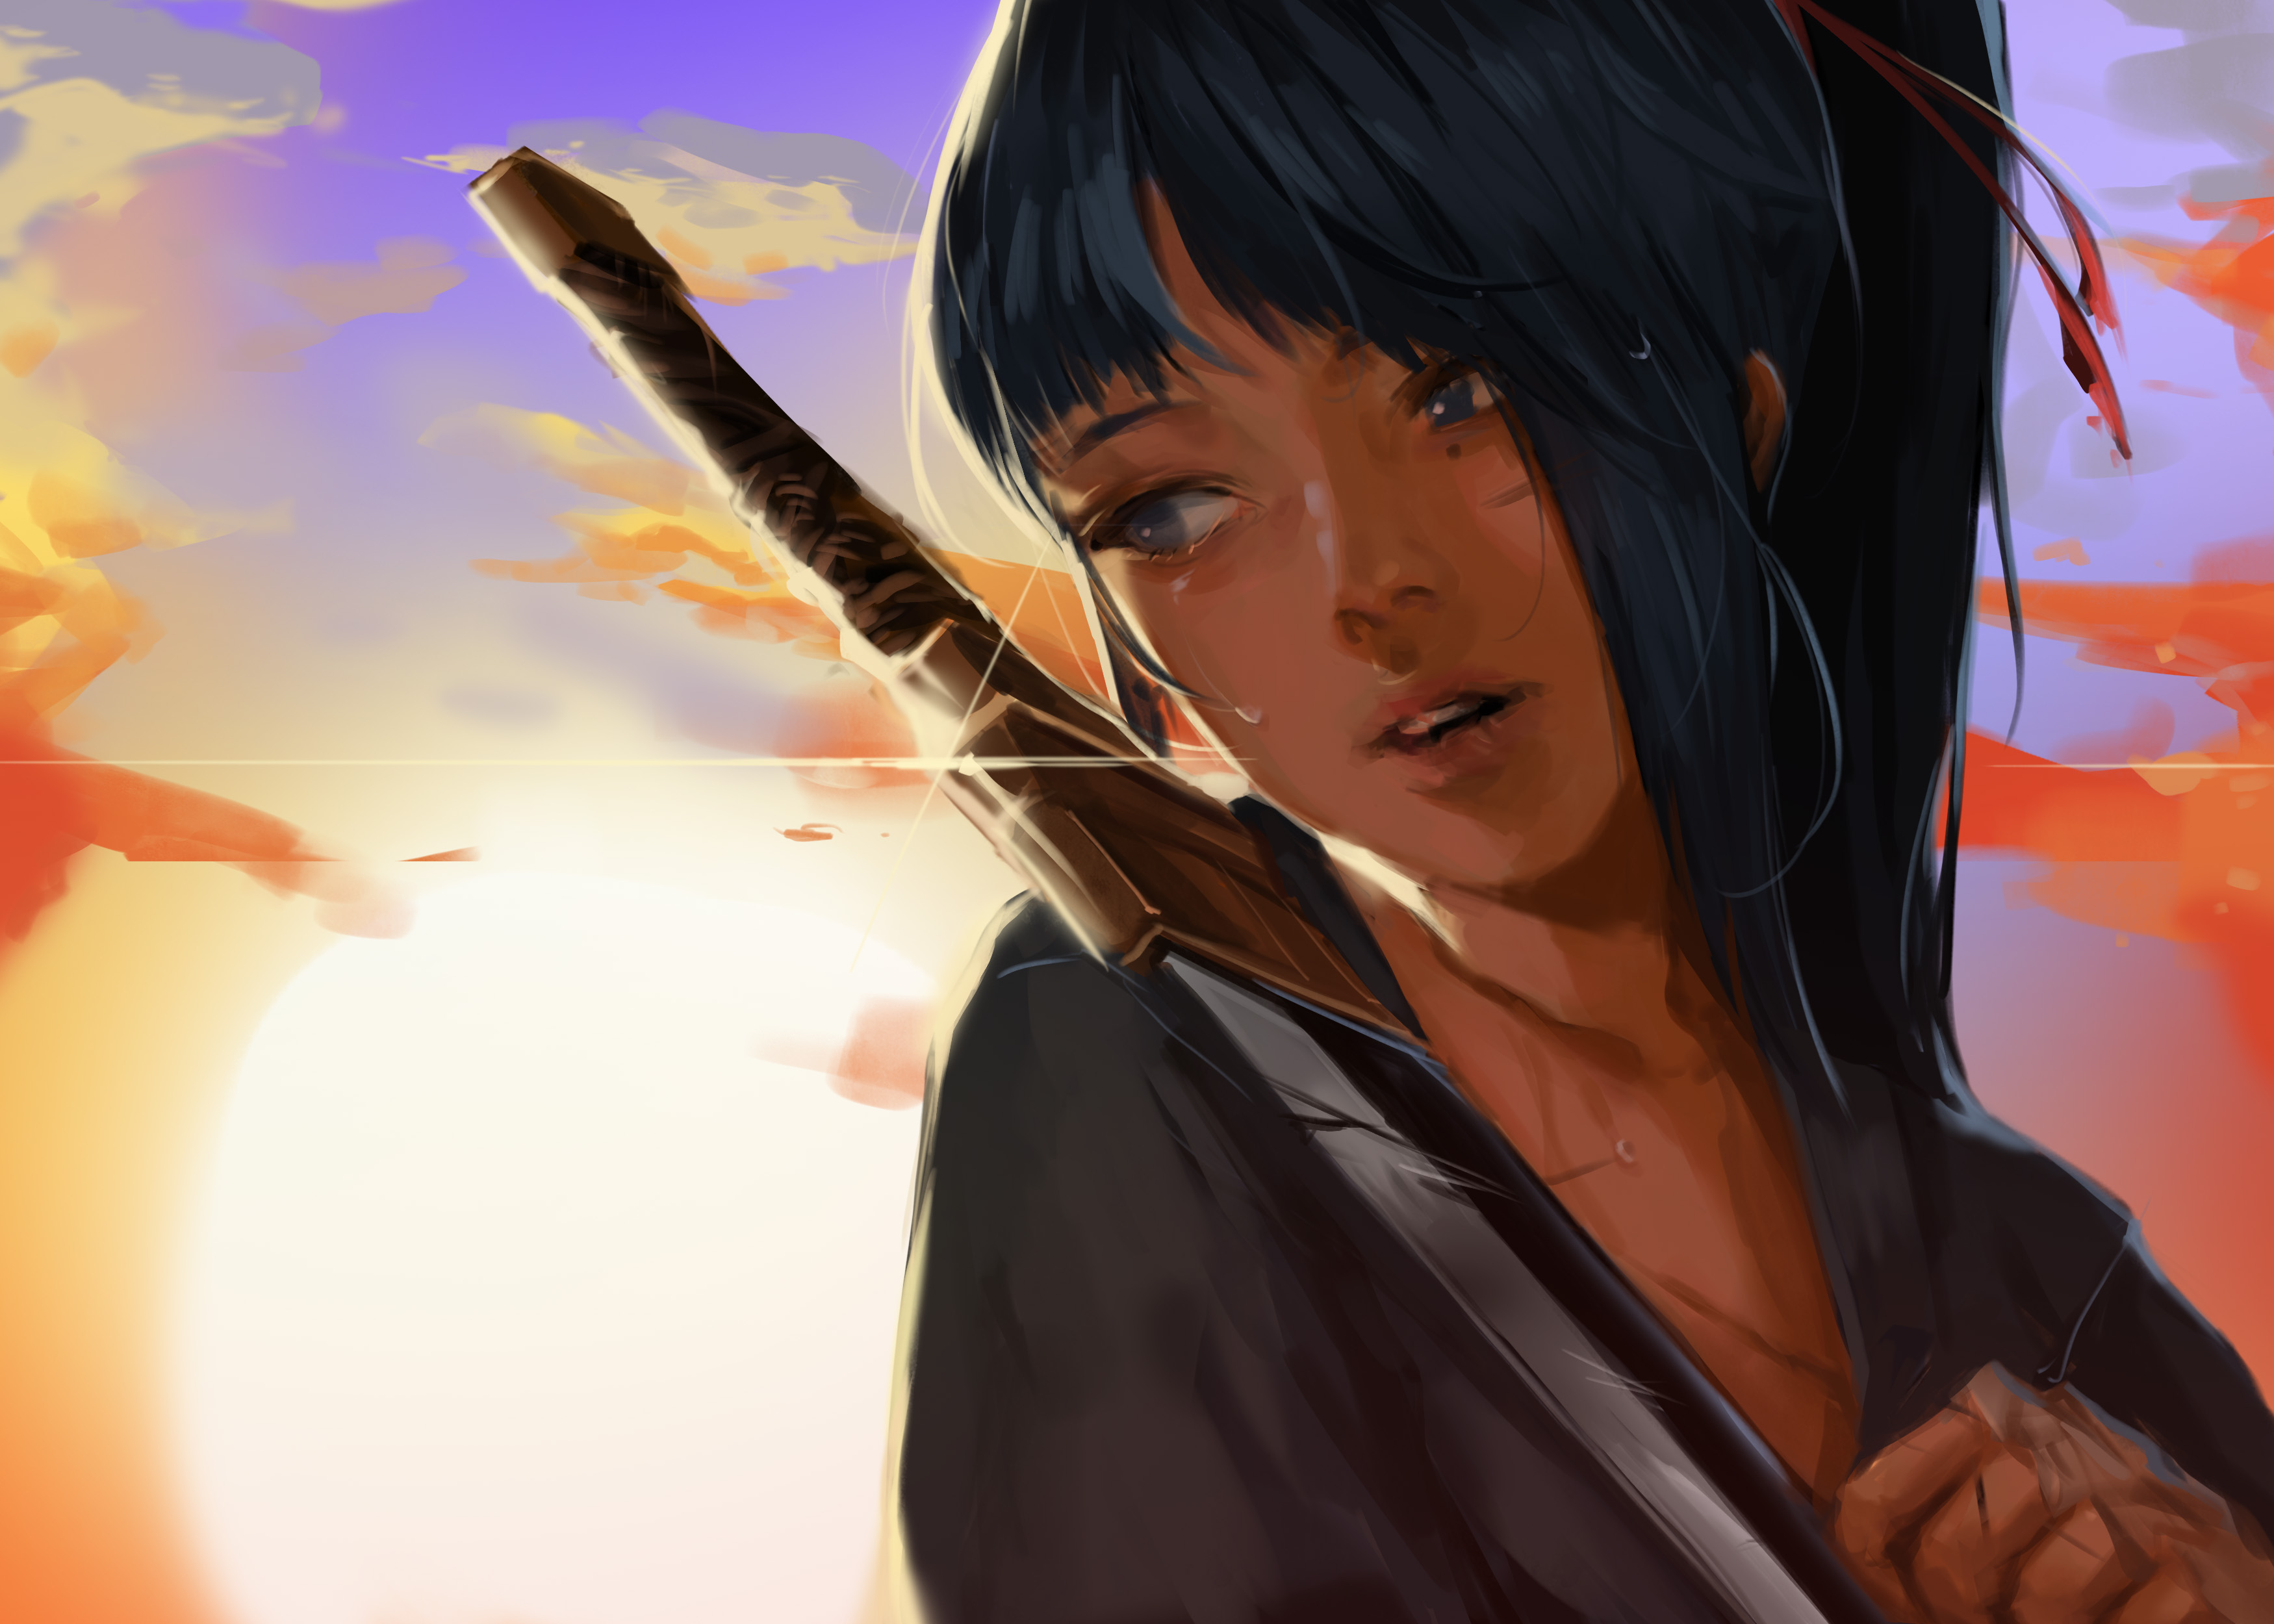 Anime 3500x2500 women looking away crying tears dark blue hair ponytail samurai katana sunset clouds portrait original characters anime girls artwork drawing 2D illustration digital art painting digital painting anime